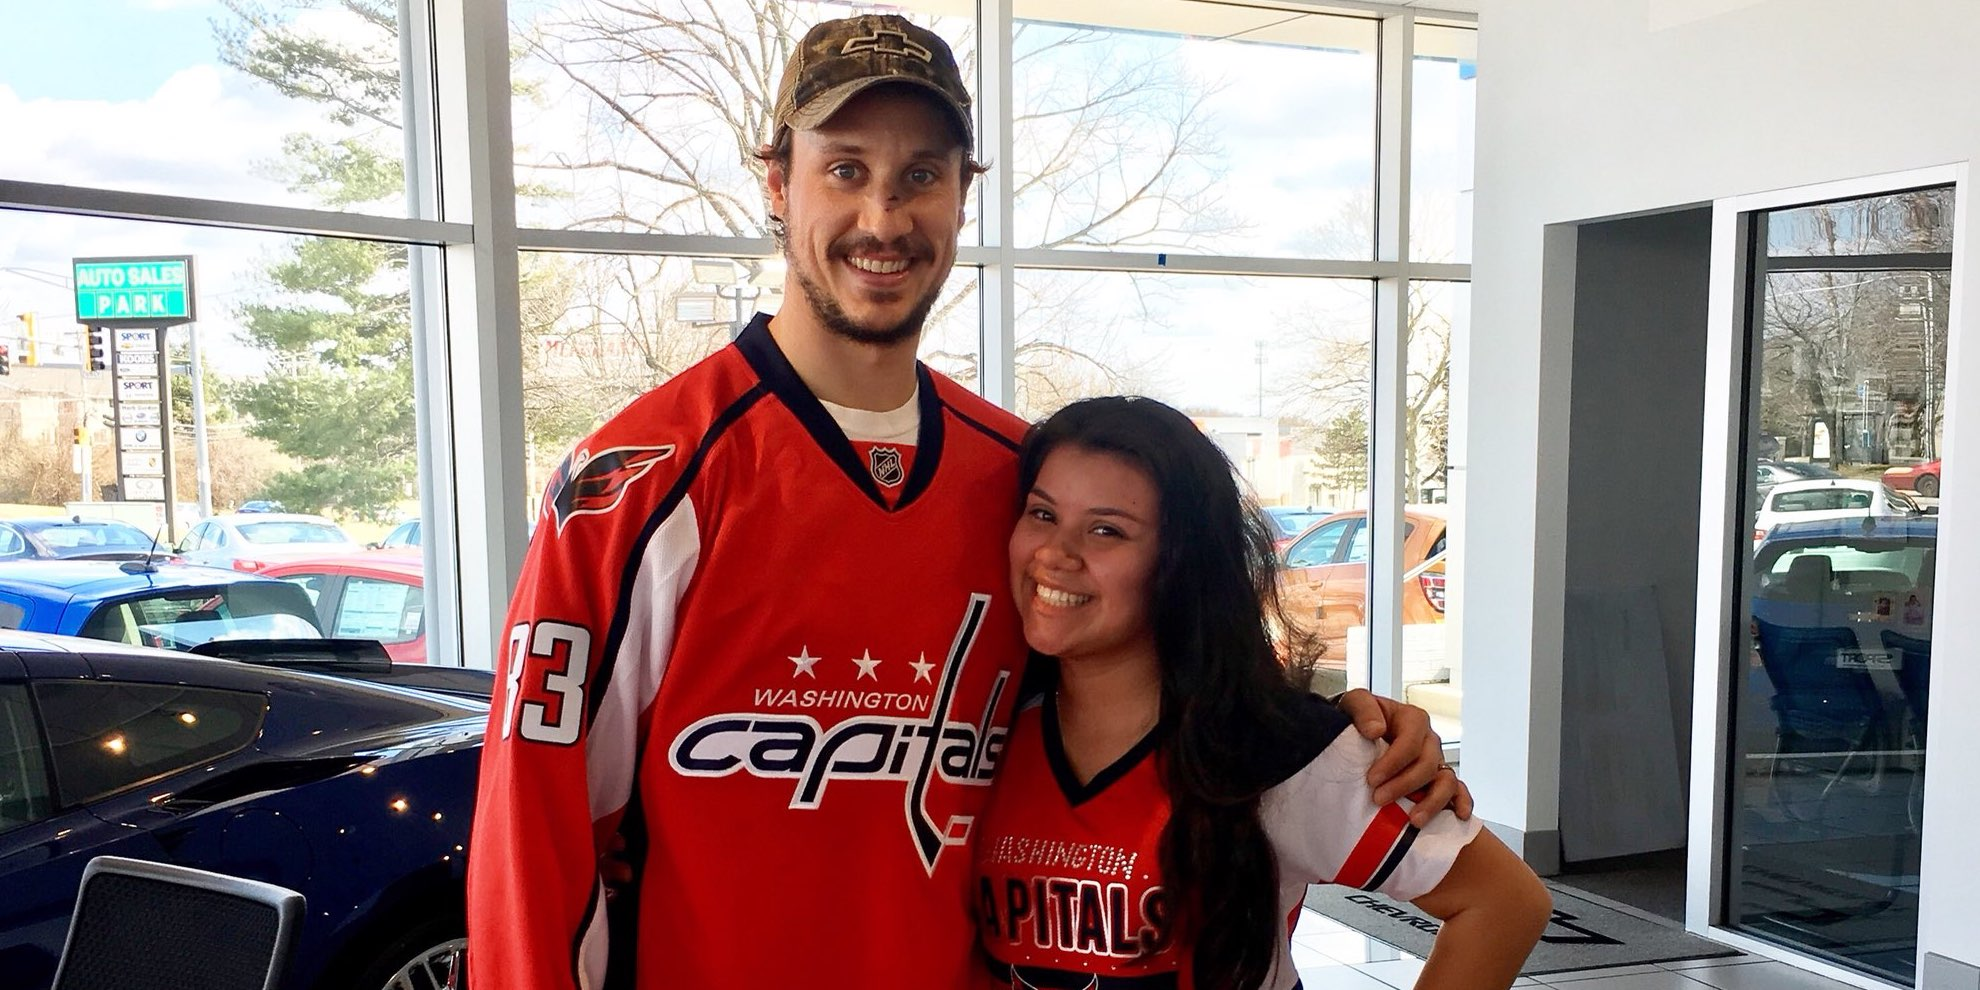 Jay Beagle leaves a lasting legacy in Washington through his kindness with  Caps fans 99699f549aa1